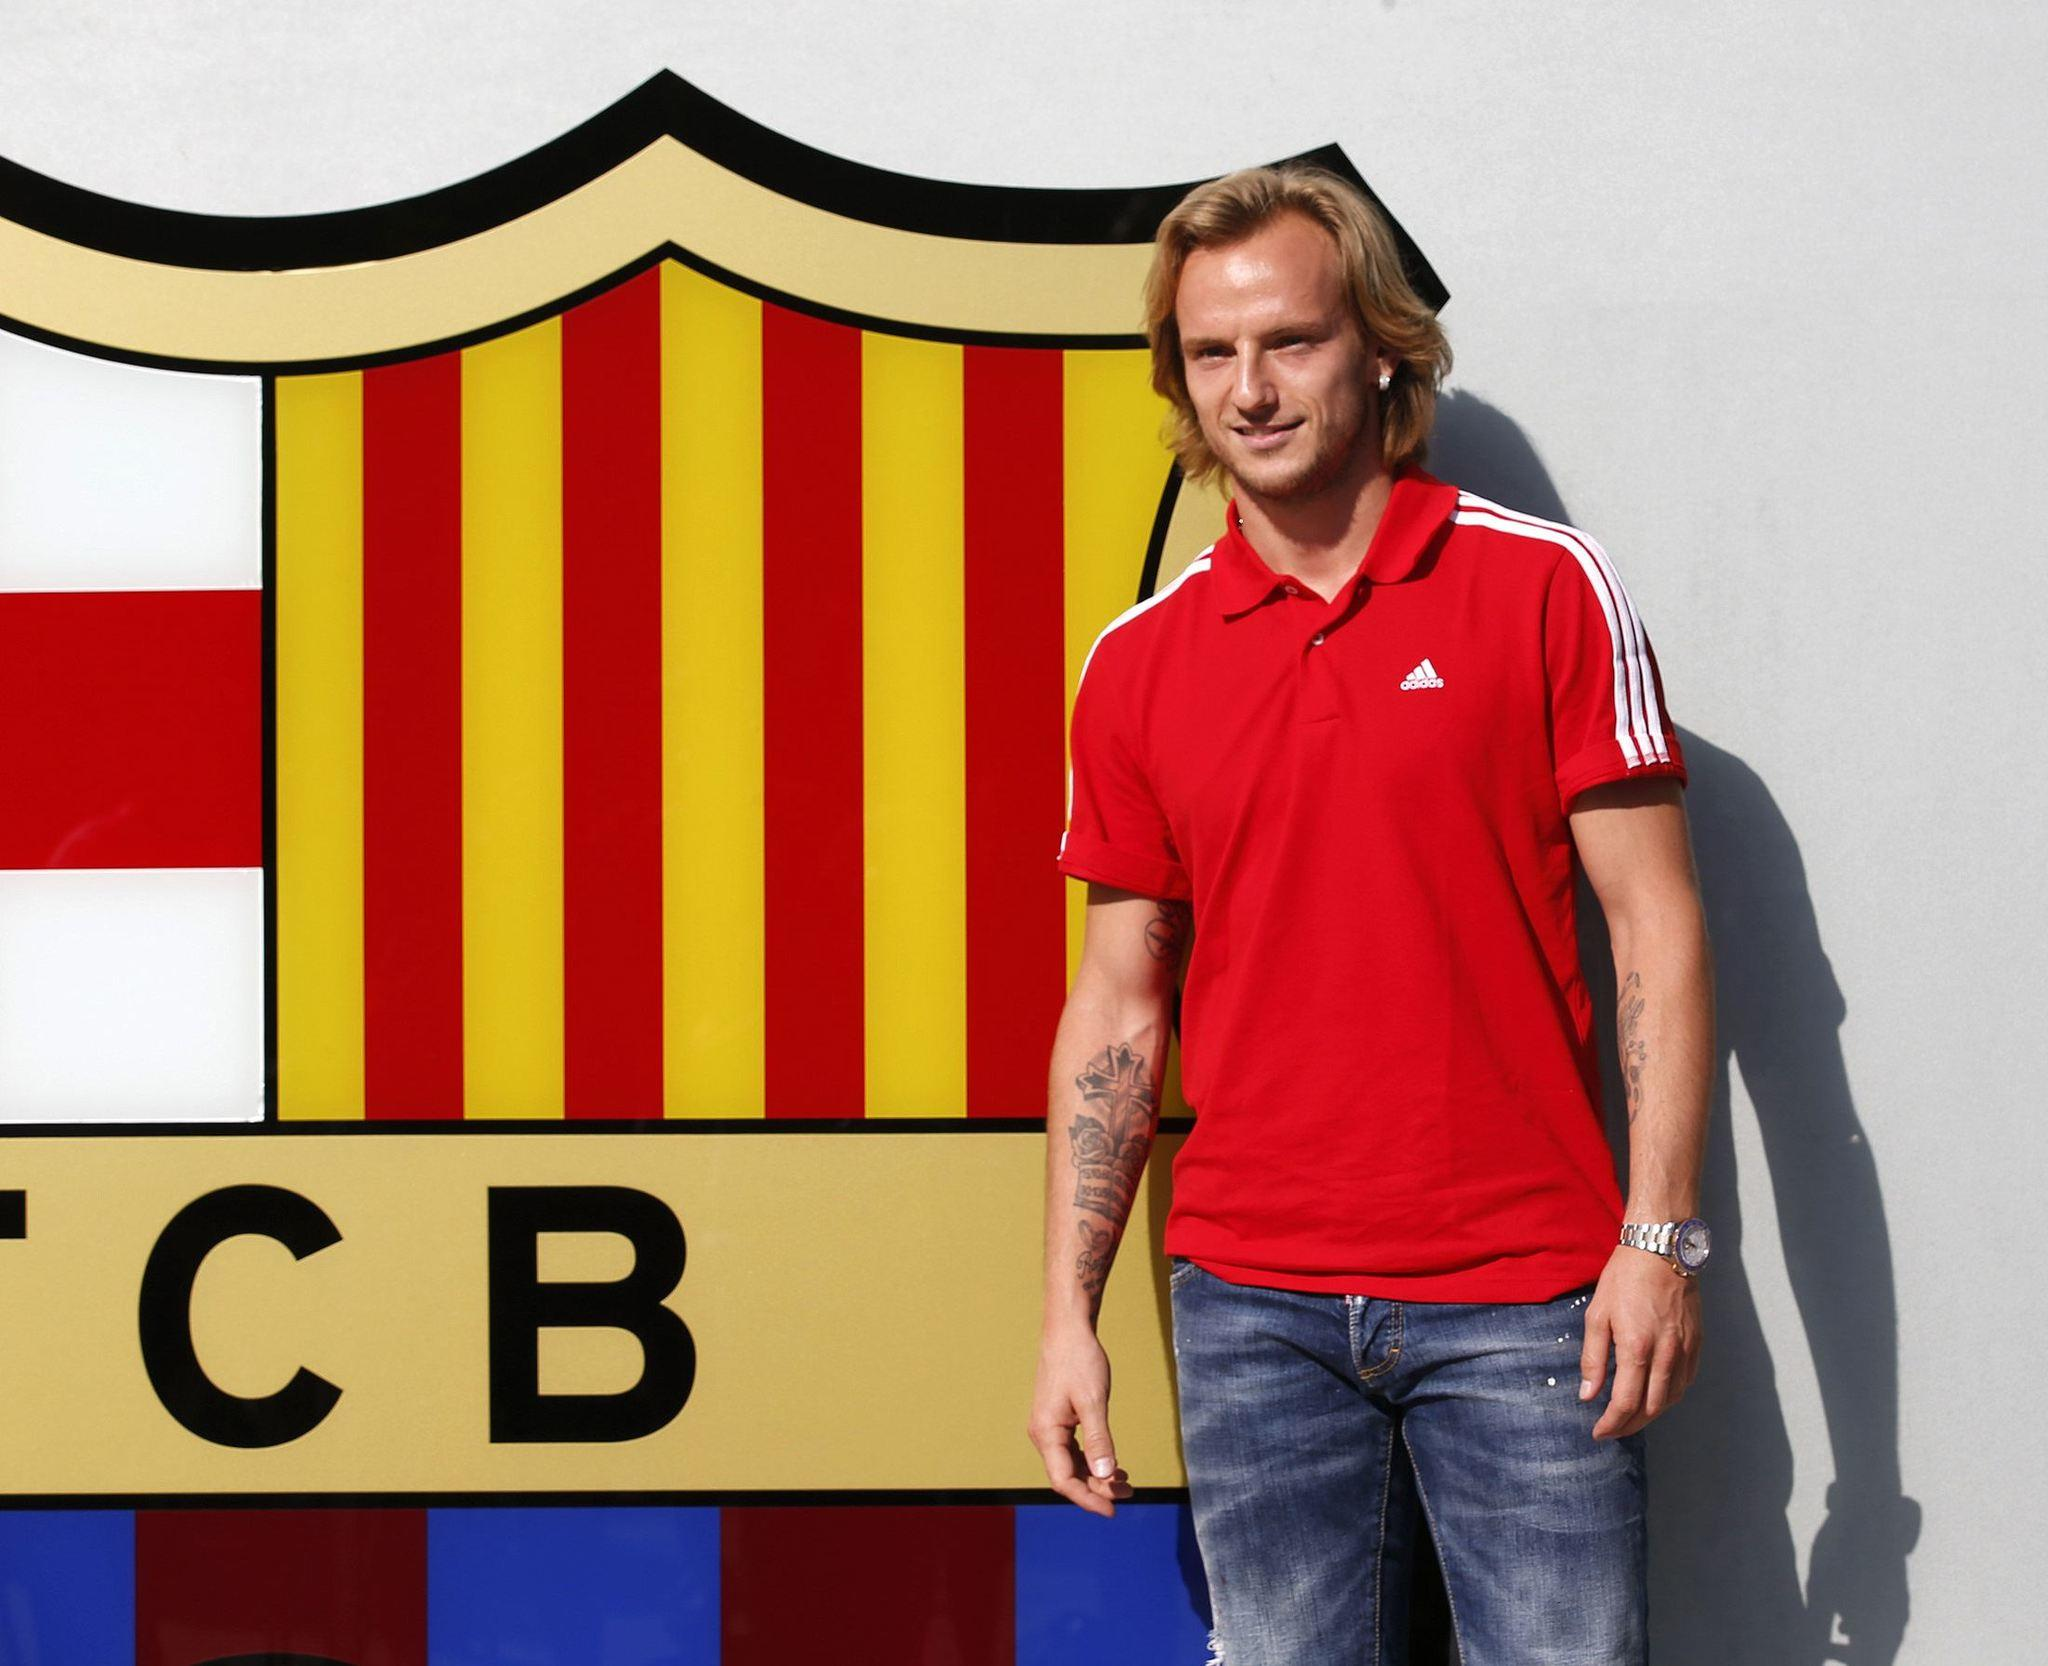 Croatian soccer player Ivan Rakitic poses next to FC Barcelona crest before signing his contract at the club's headquarters in Barcelona June 30, 2014 REUTERS/Gustau Nacarino (SPAIN - Tags: SPORT SOCCER) ORG XMIT: BAR03